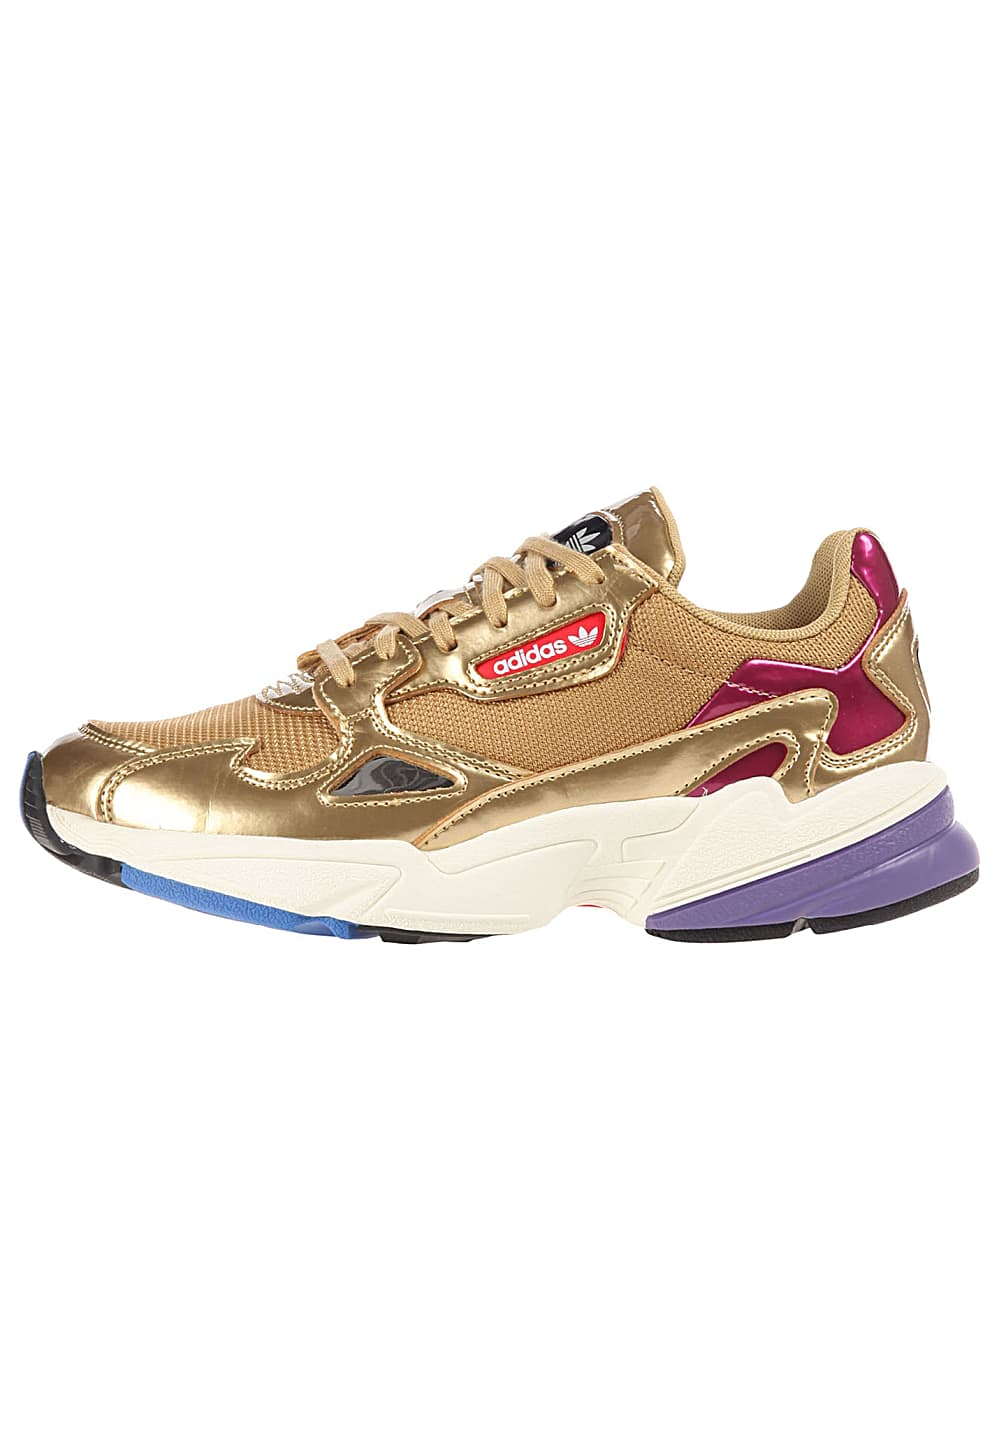 ADIDAS ORIGINALS Falcon - Sneakers voor Dames - Goud ...